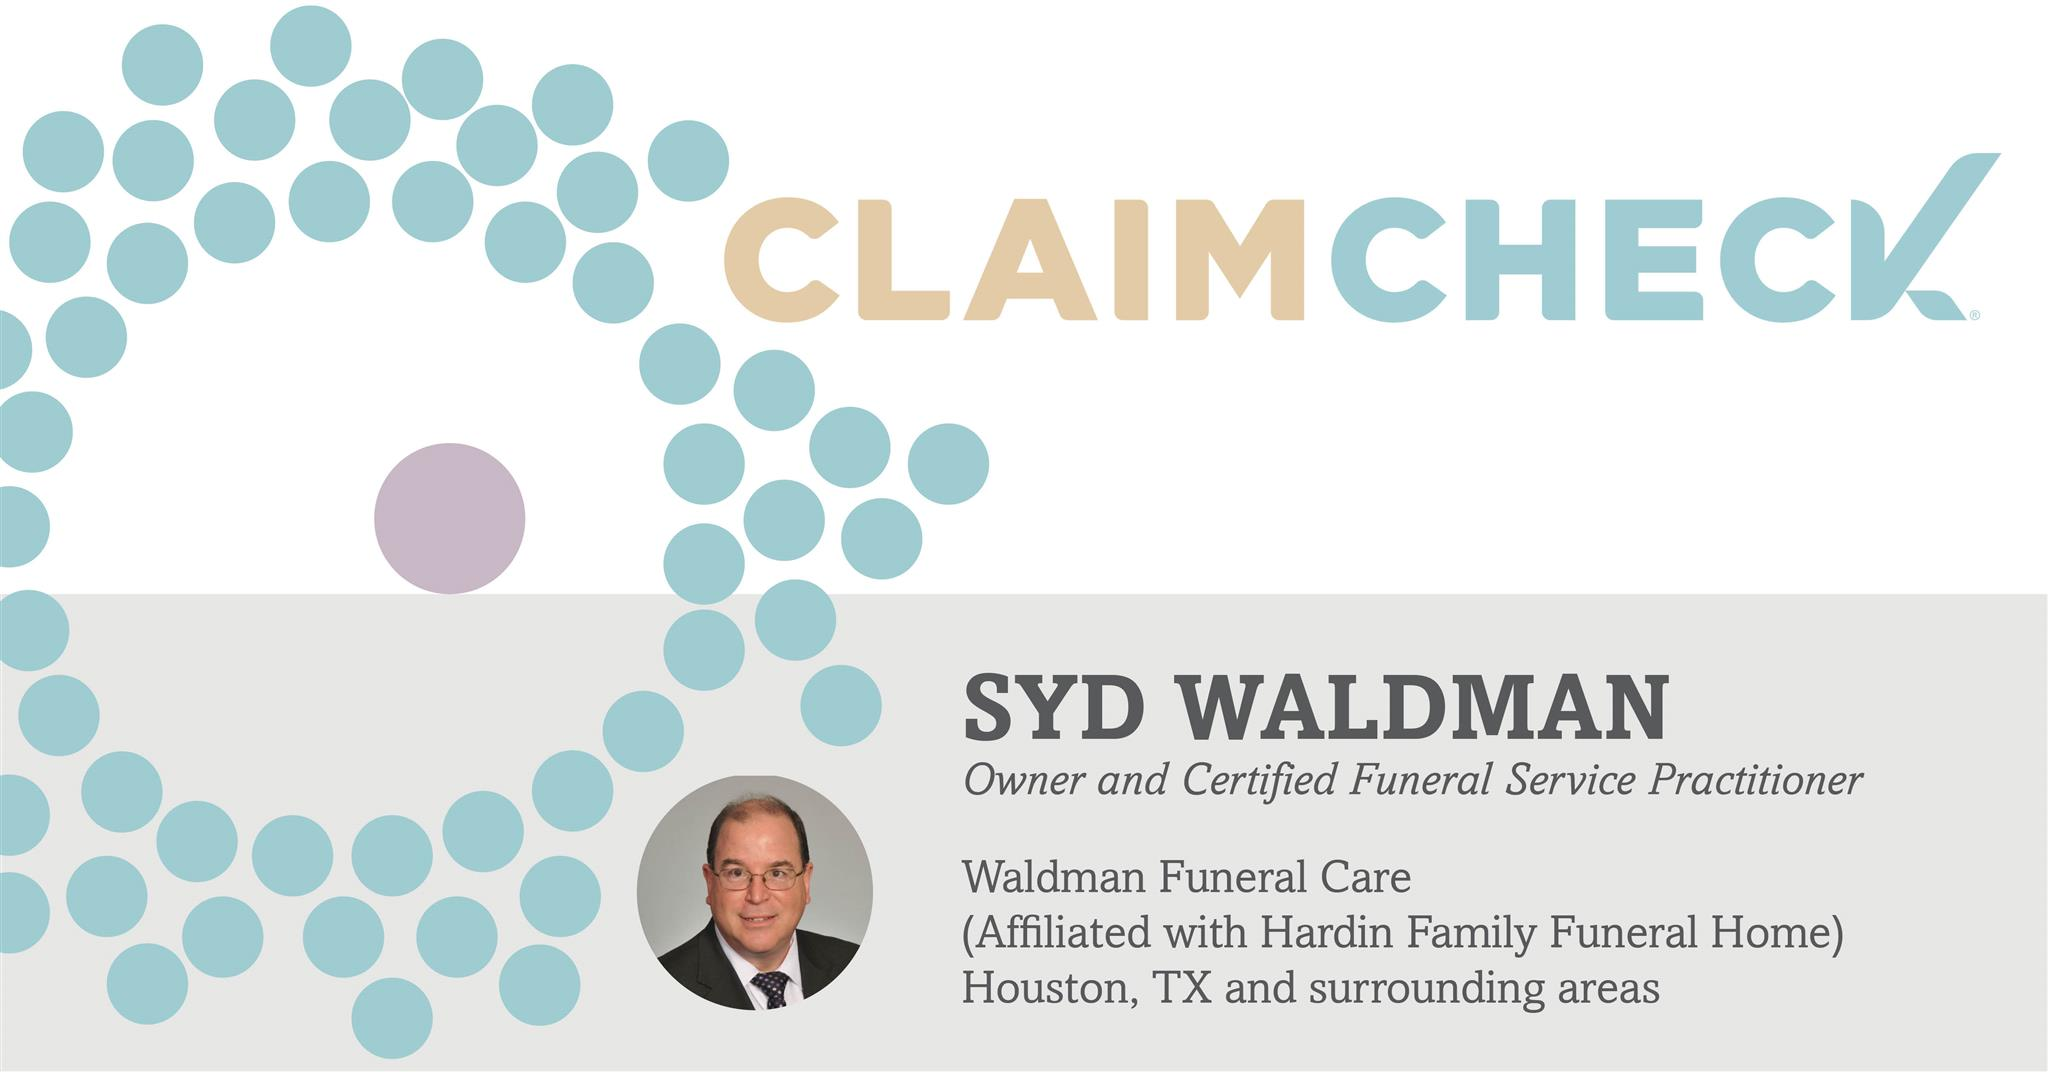 why claimcheck waldman funeral care